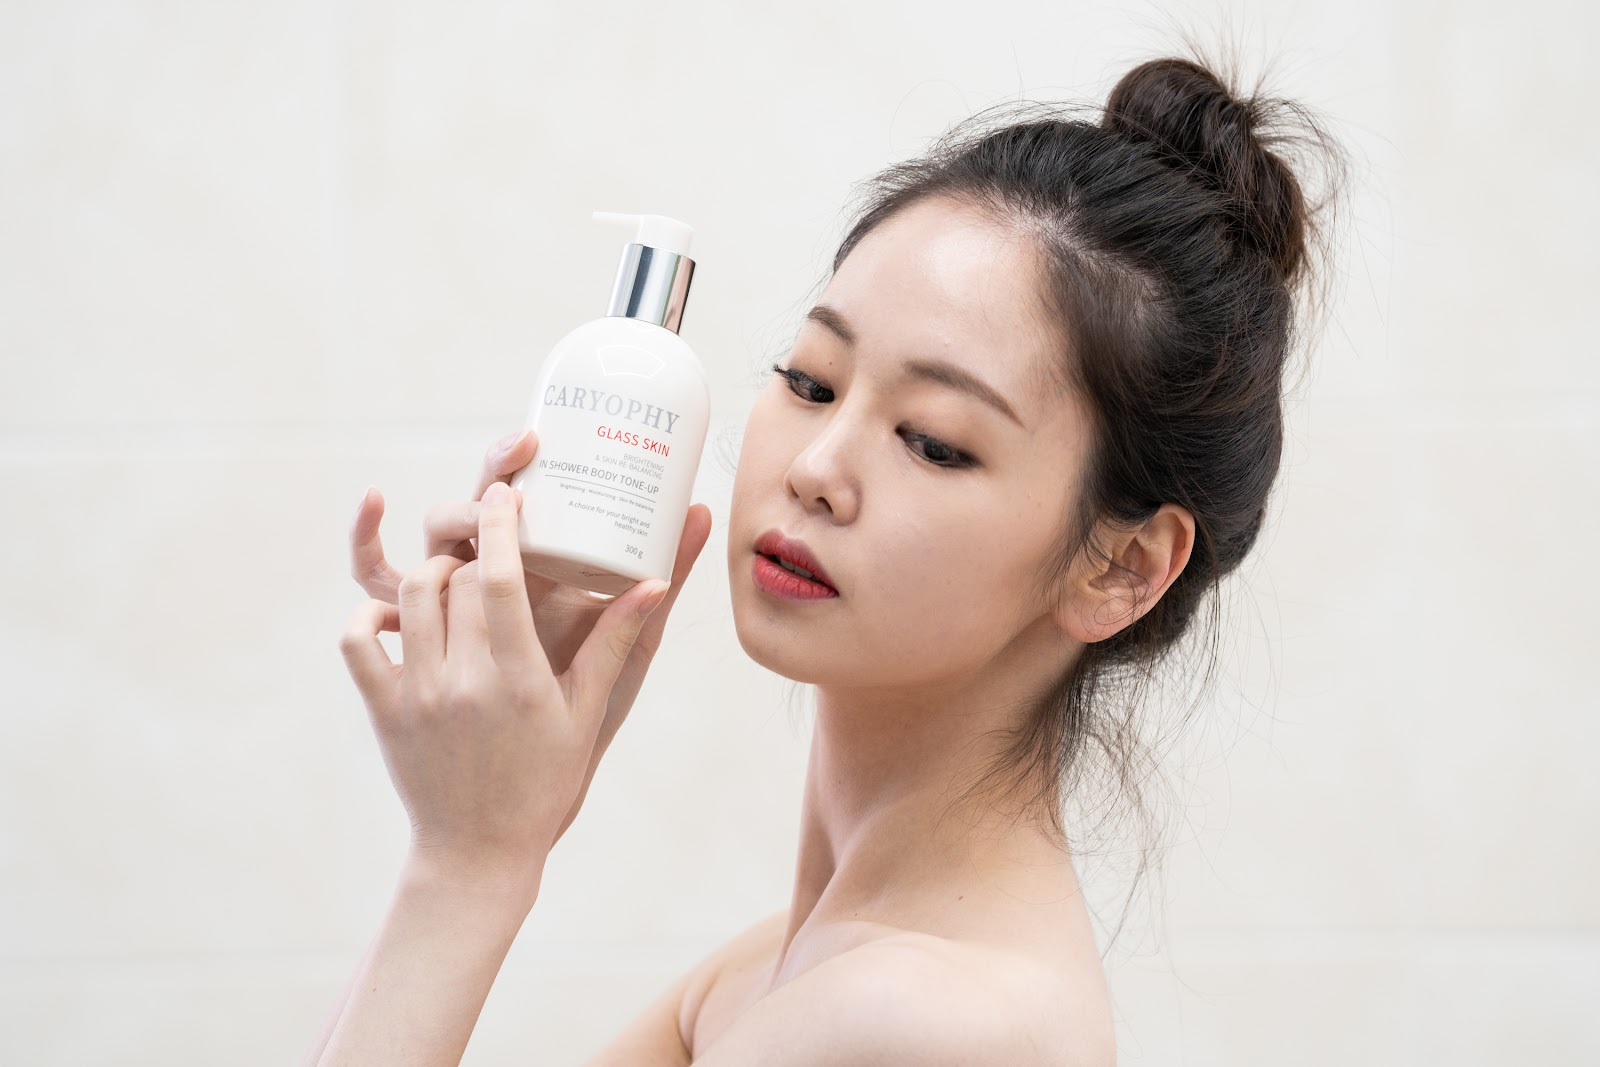 Caryophy 3 in 1 Glass skin in Shower Body Tone up.